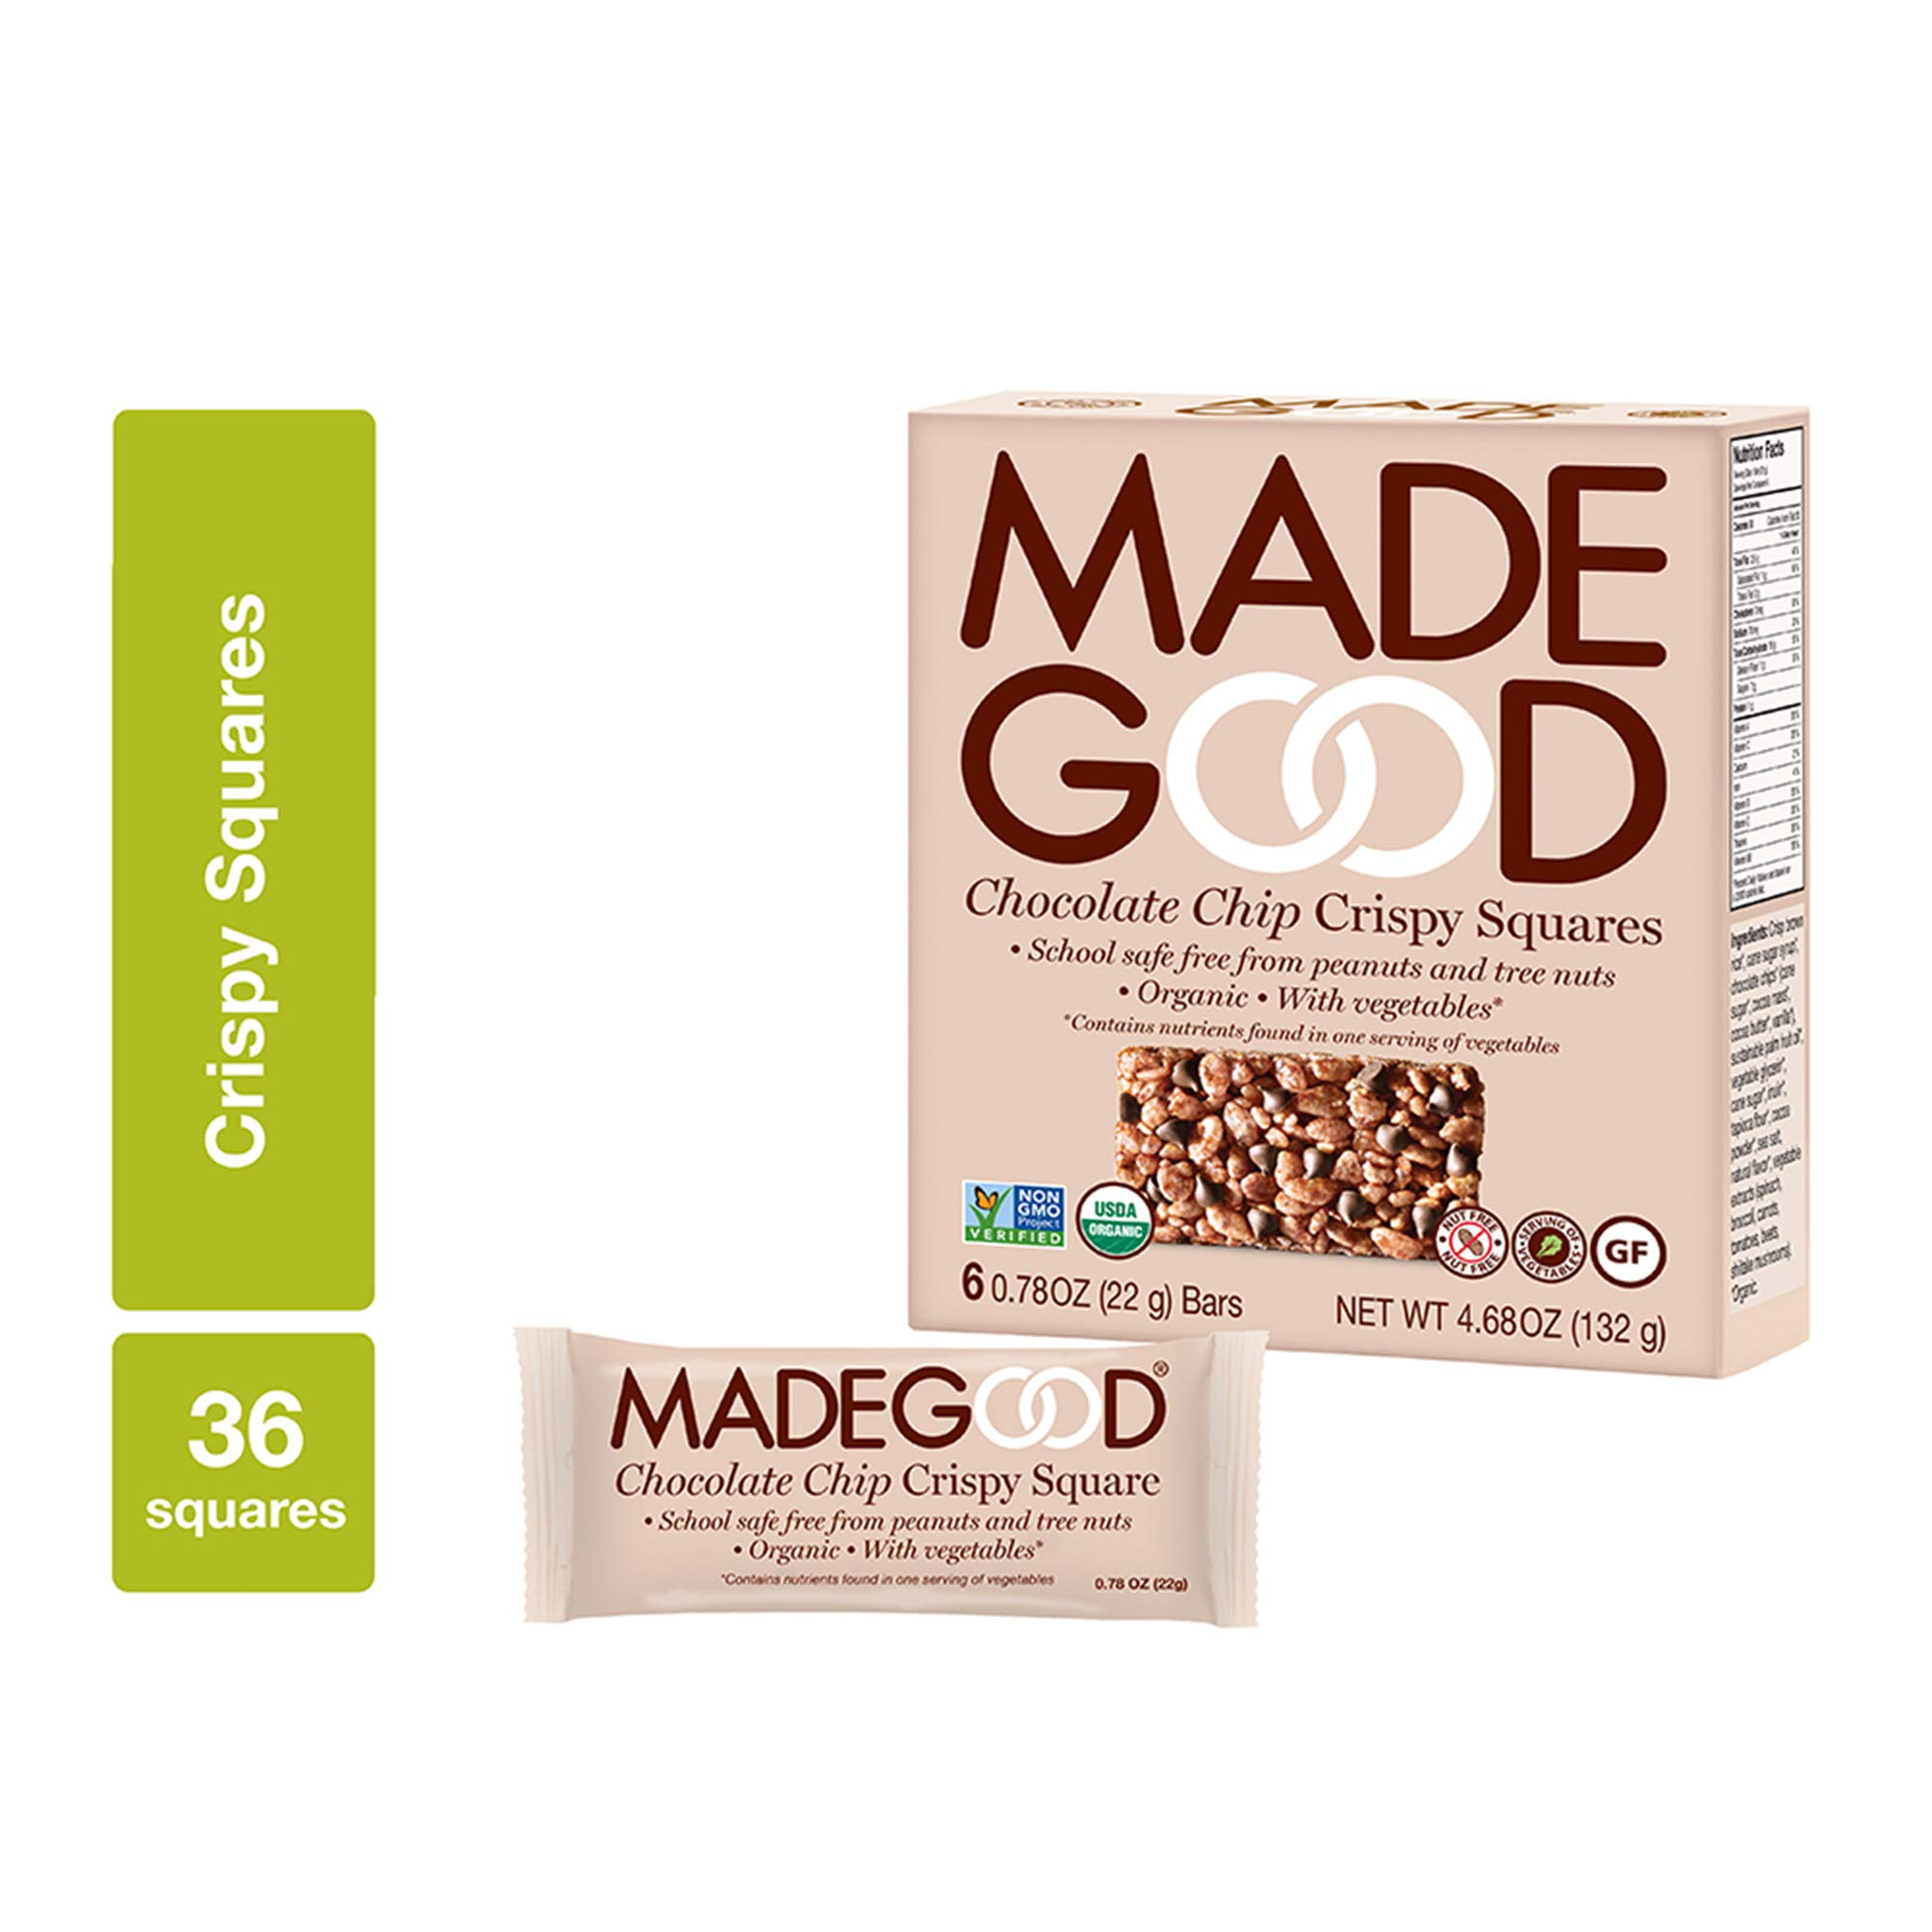 Made Good Chocolate Chip Crispy Squares, 22 gram, (Pack of 6)